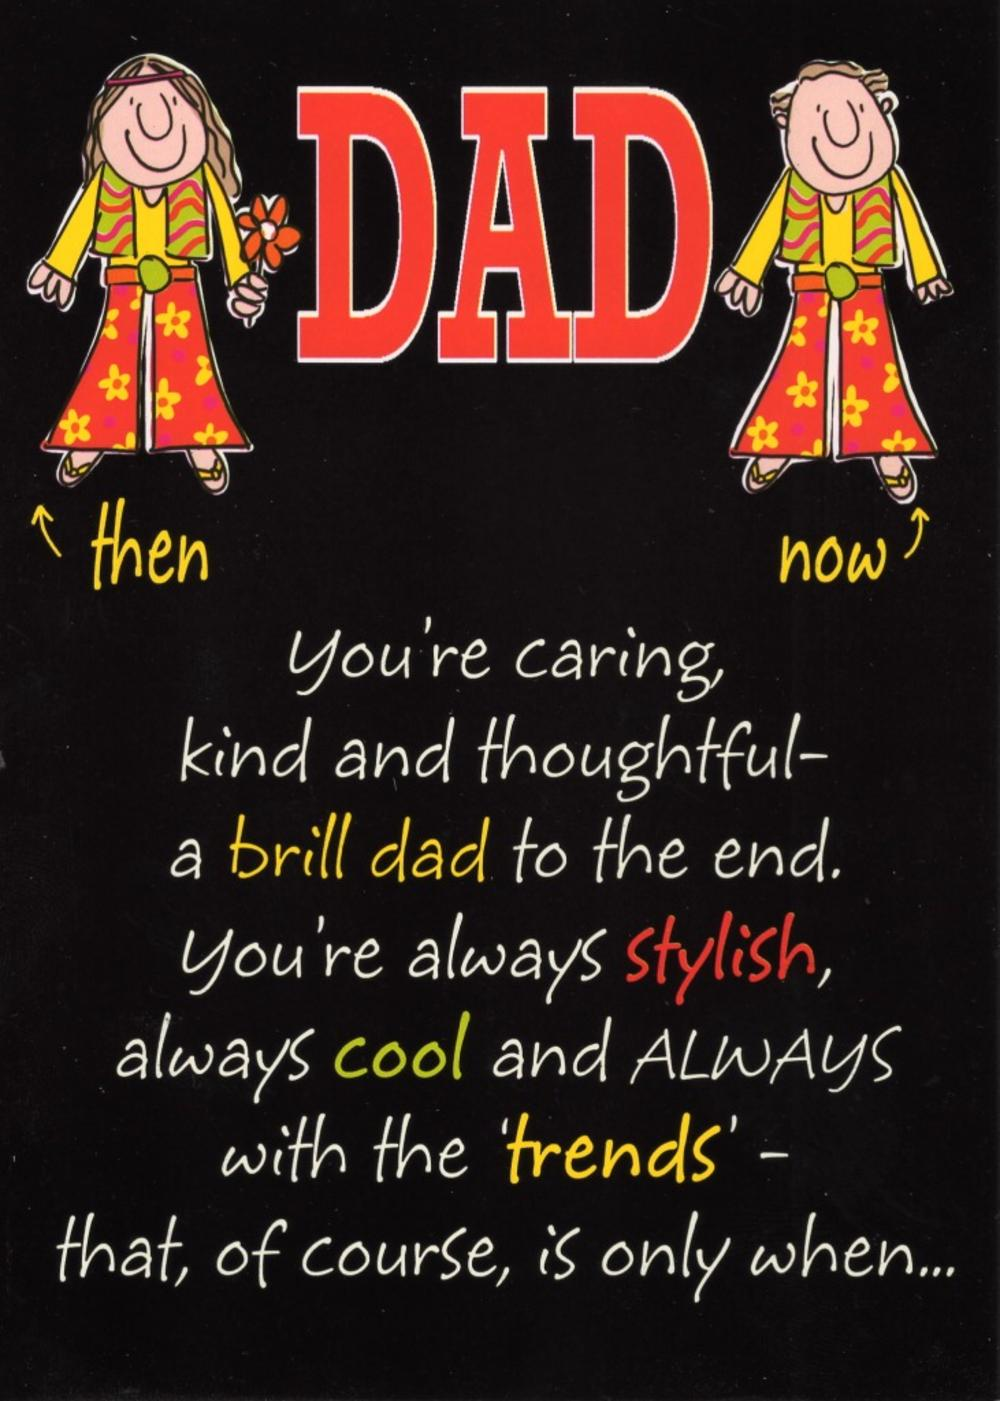 Trendy Groovy Dad Funny Father's Day Card